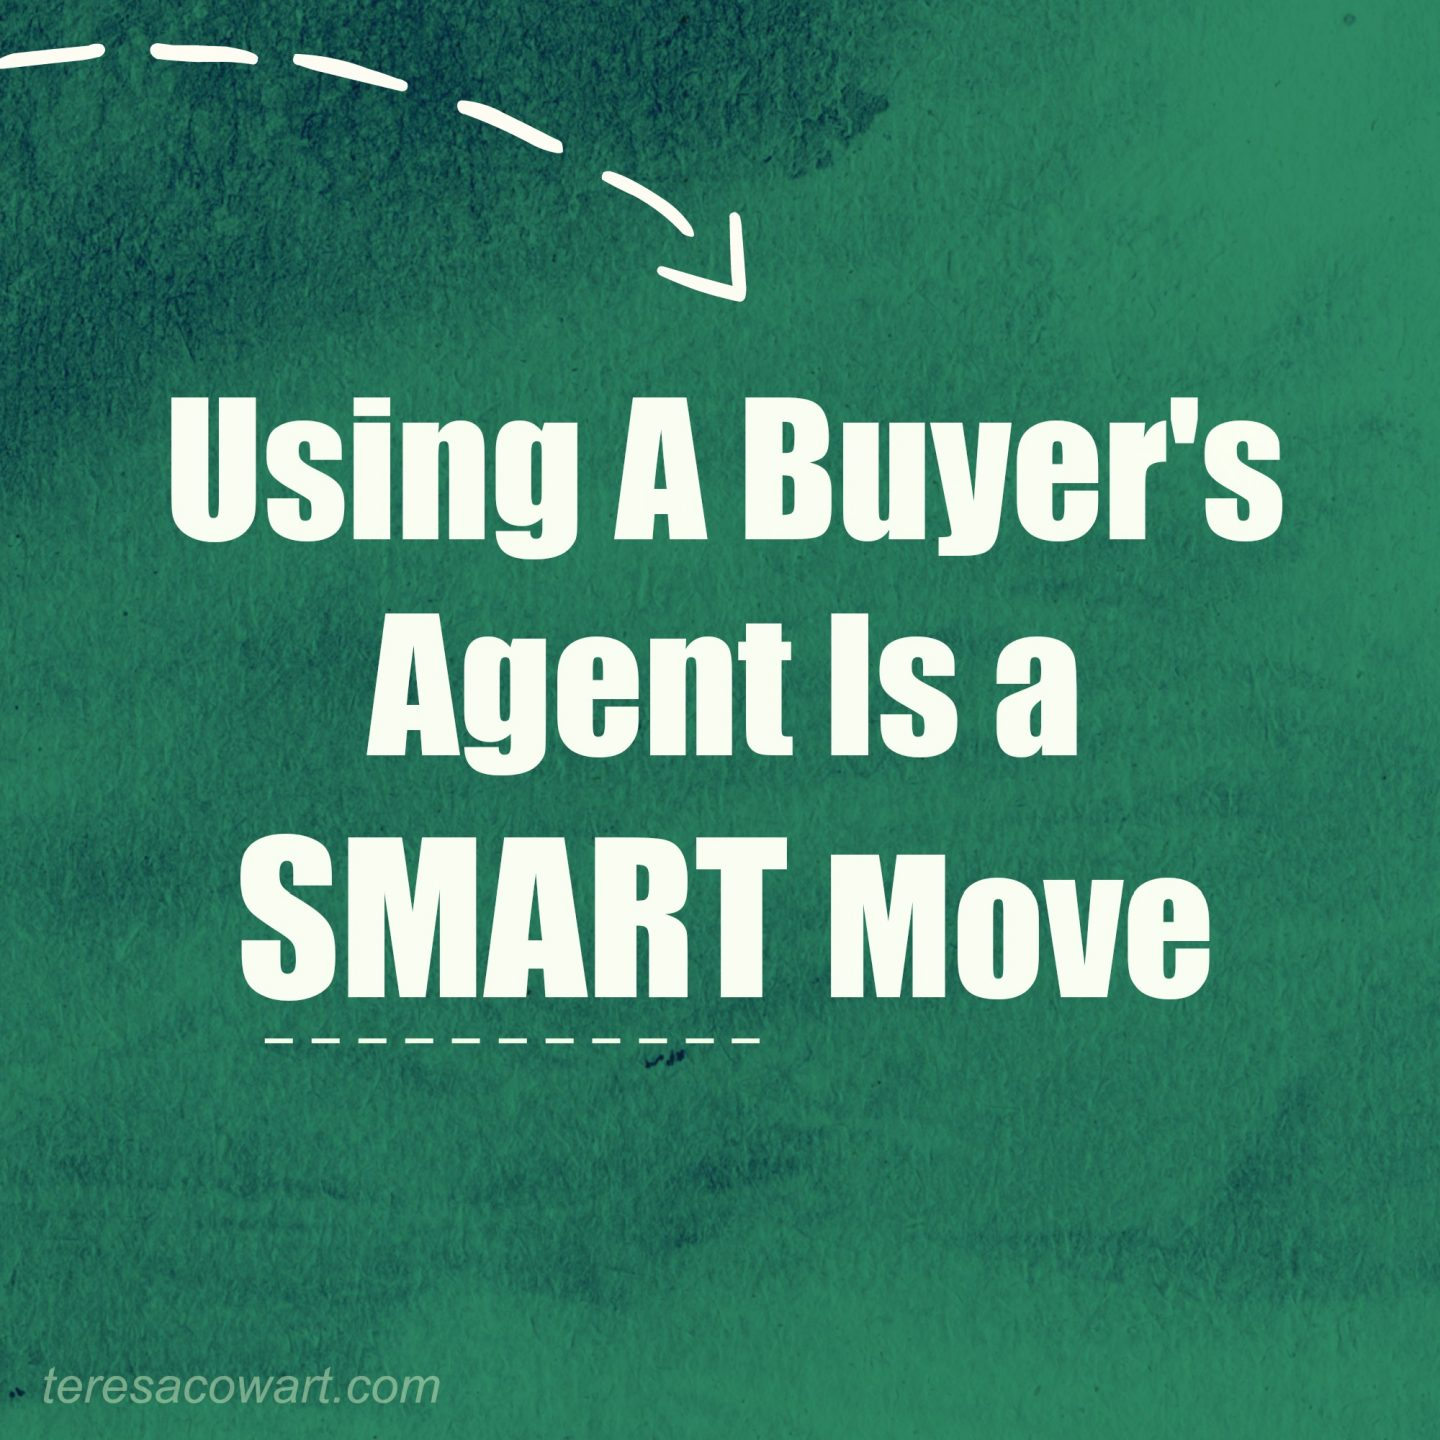 Why Use Buyer's Agent